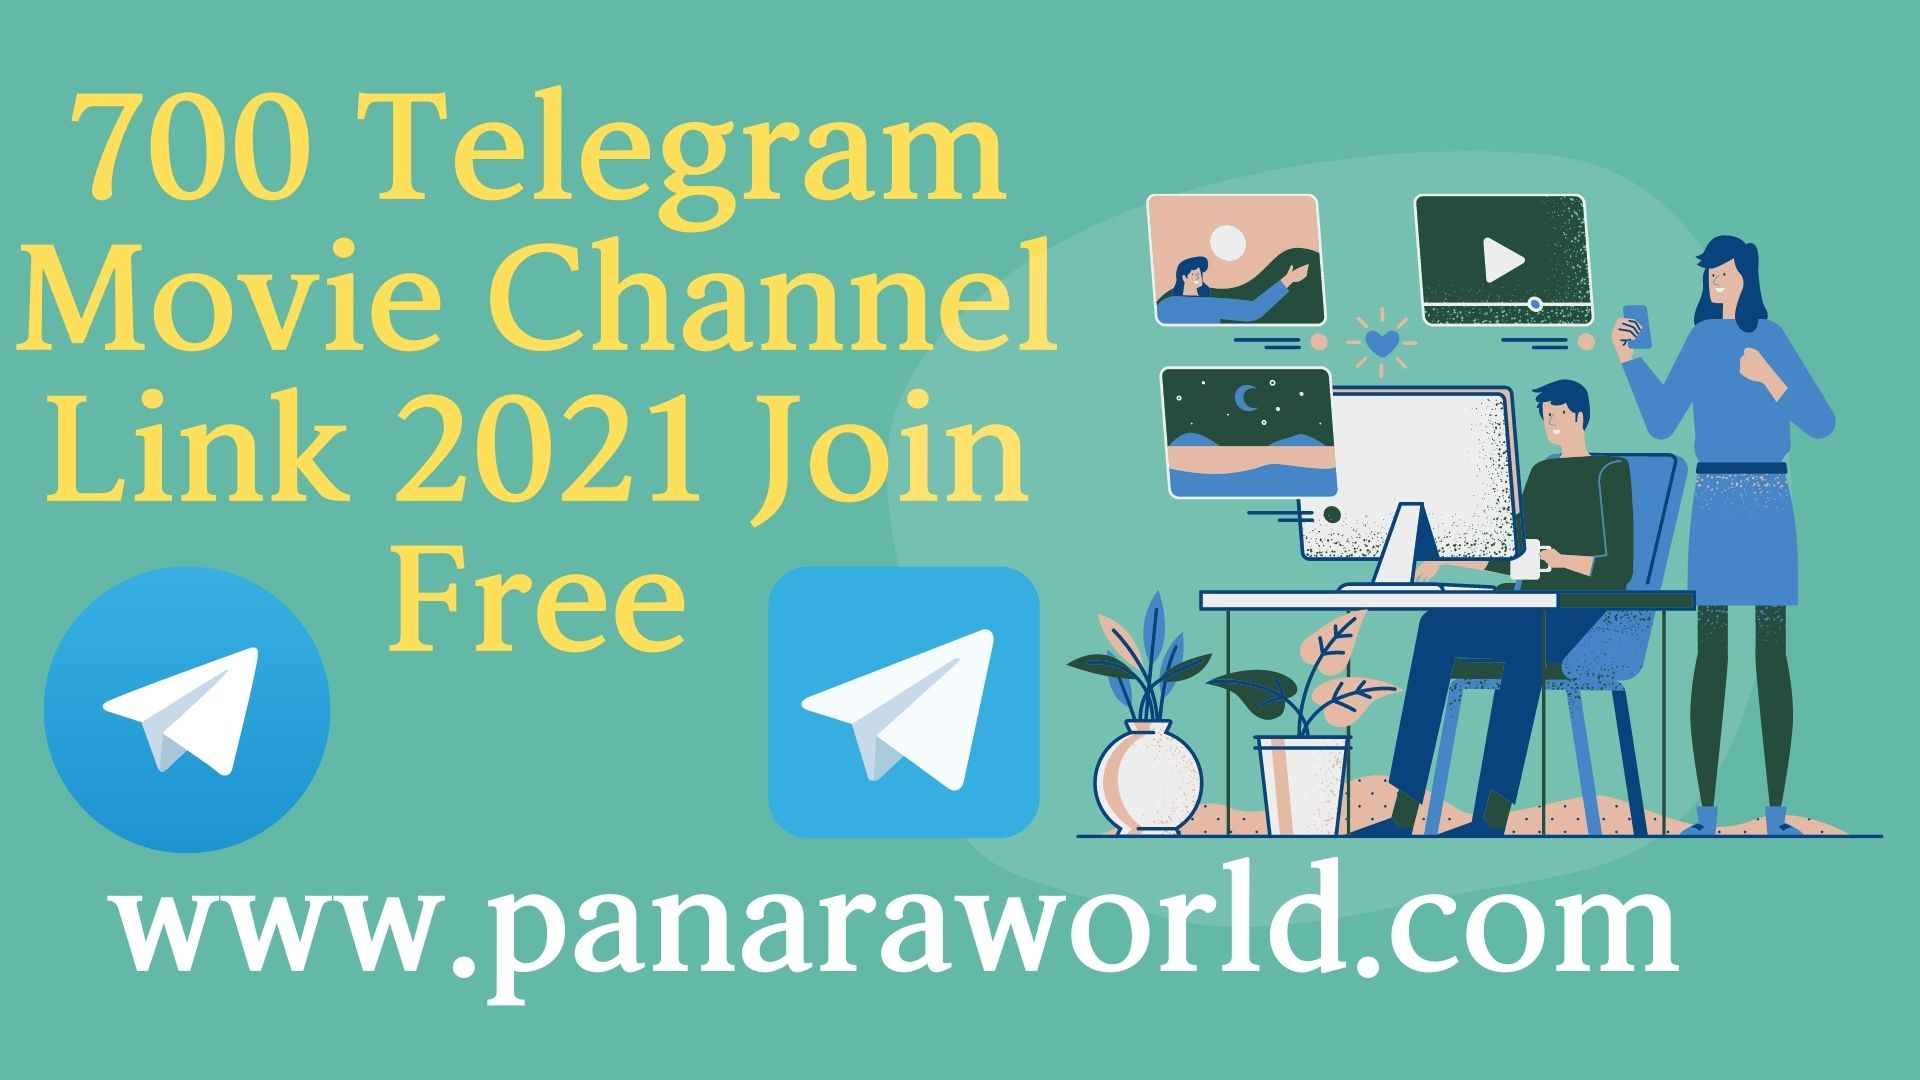 Telegram Movie Channel Link 2021